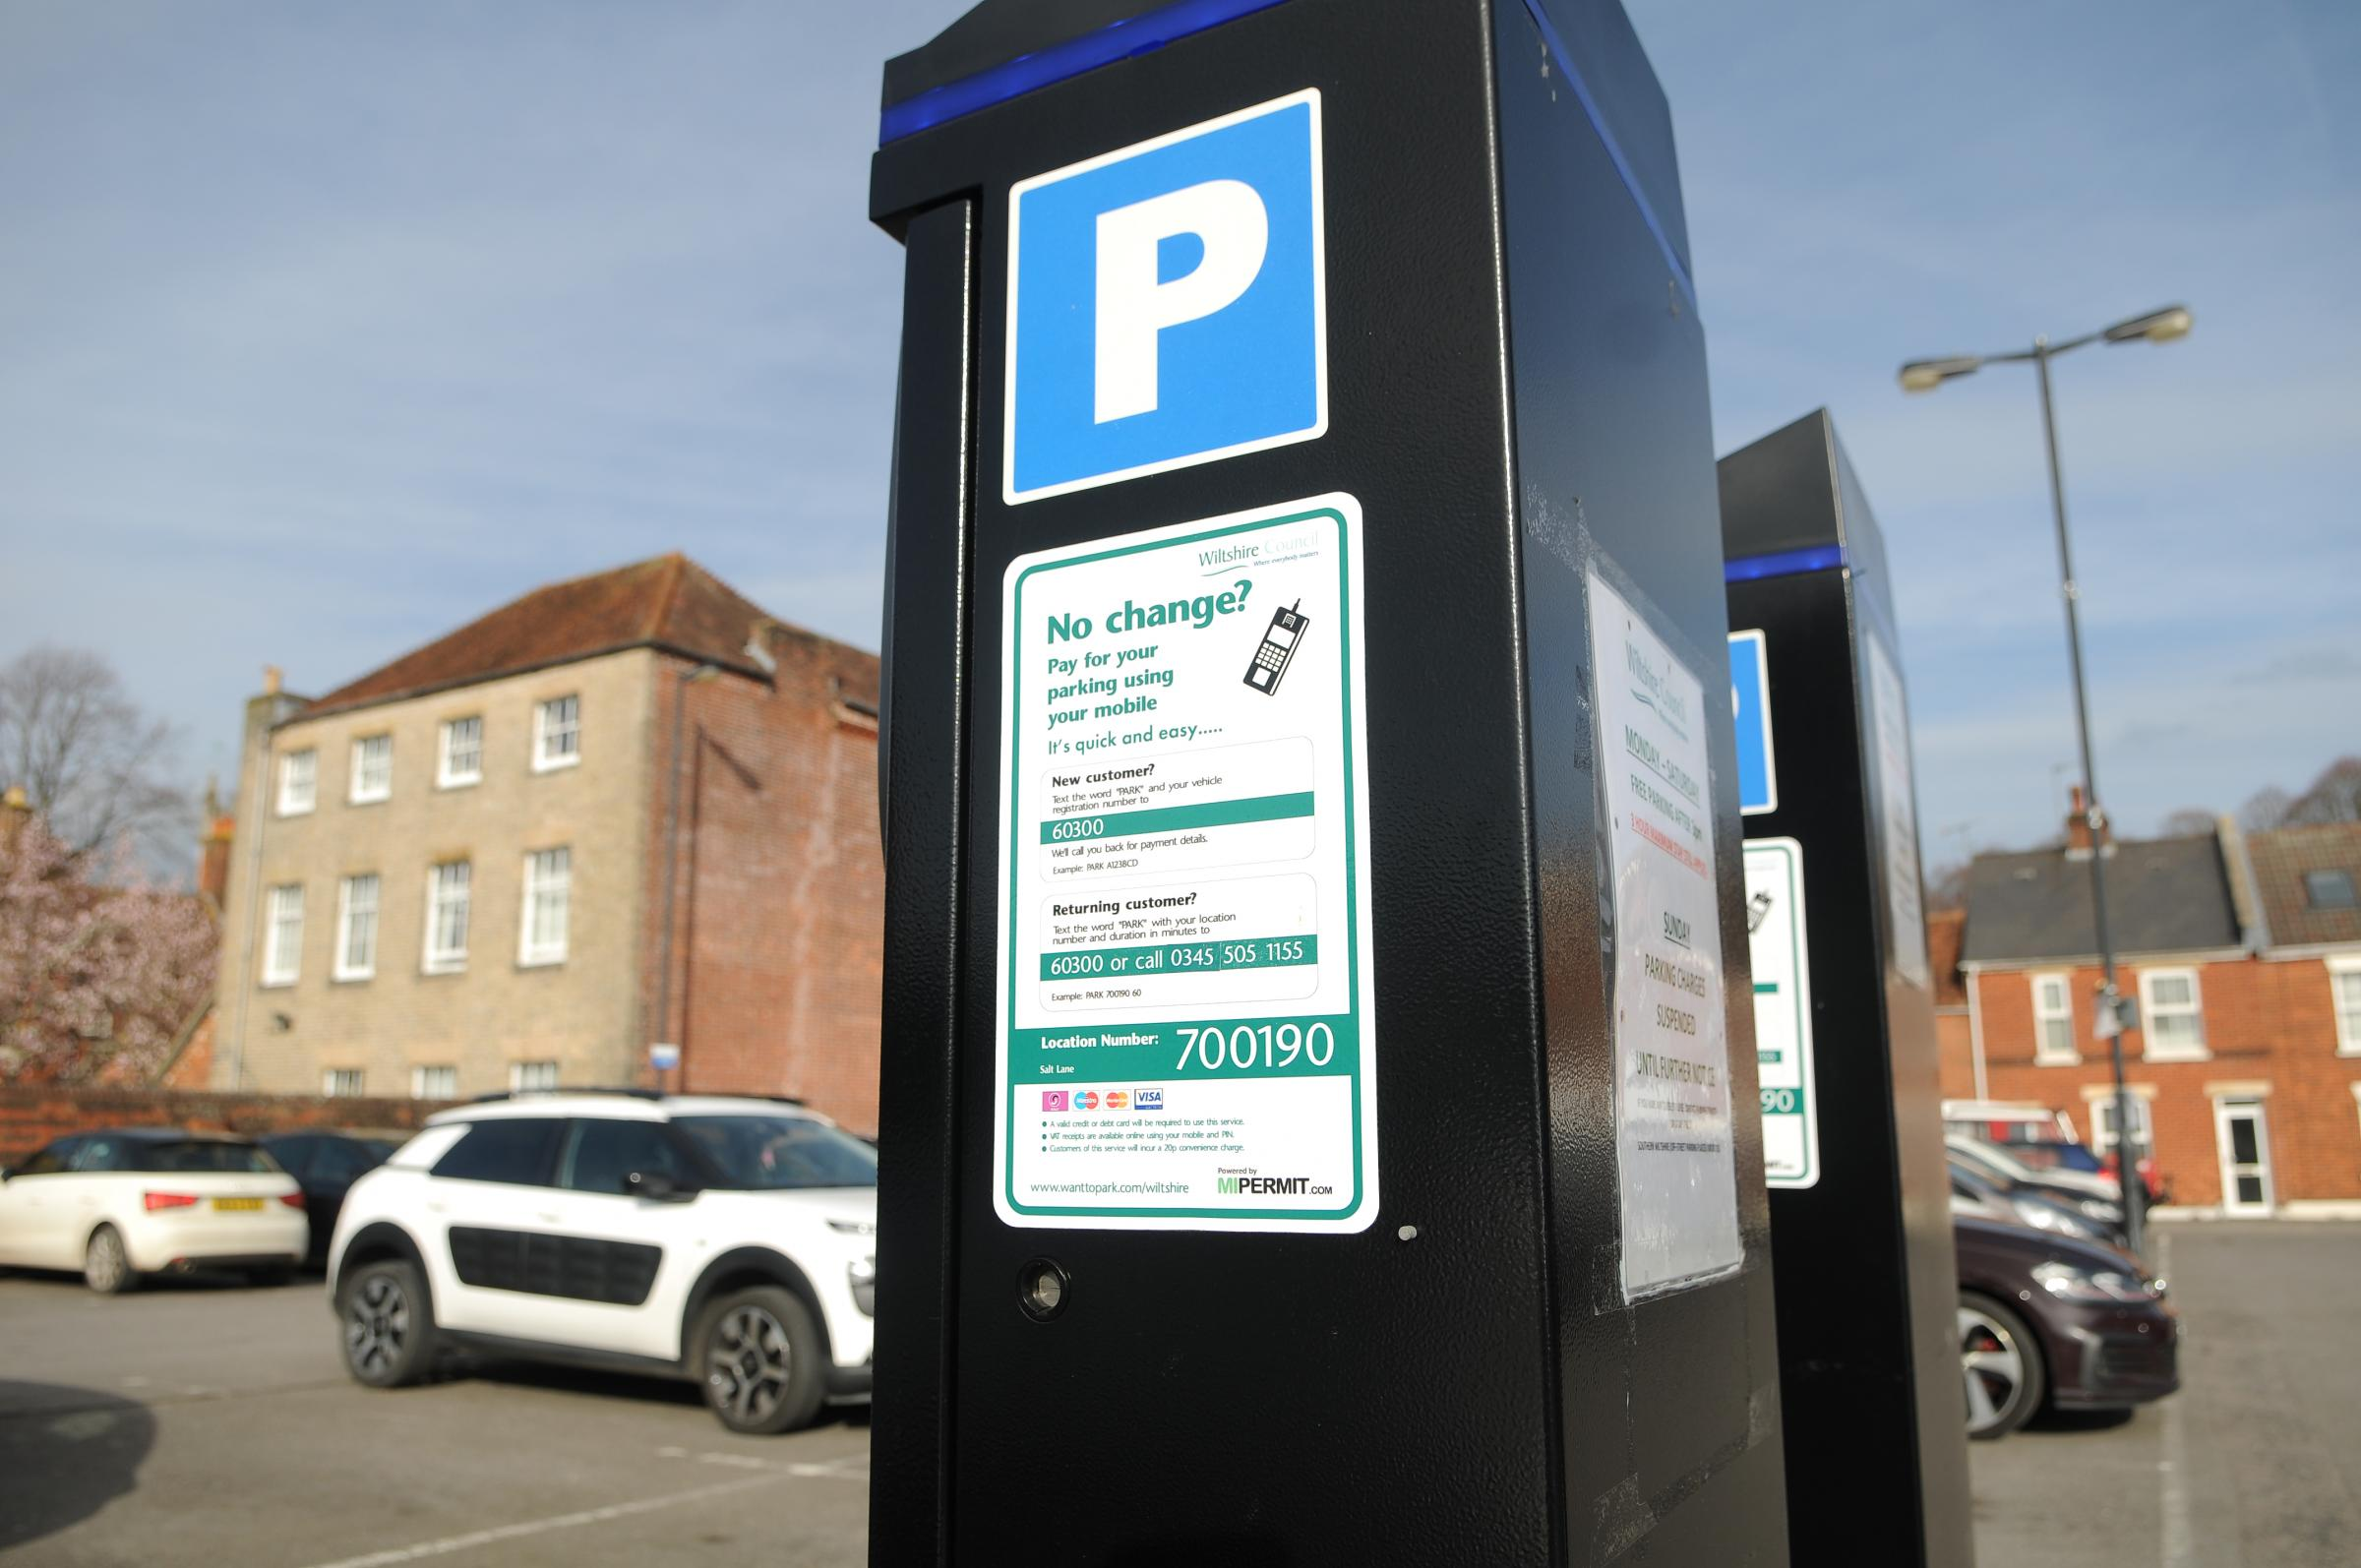 Parking meter in Salt Lane car park, Salisbury DC9031P1 Picture by Tom Gregory.